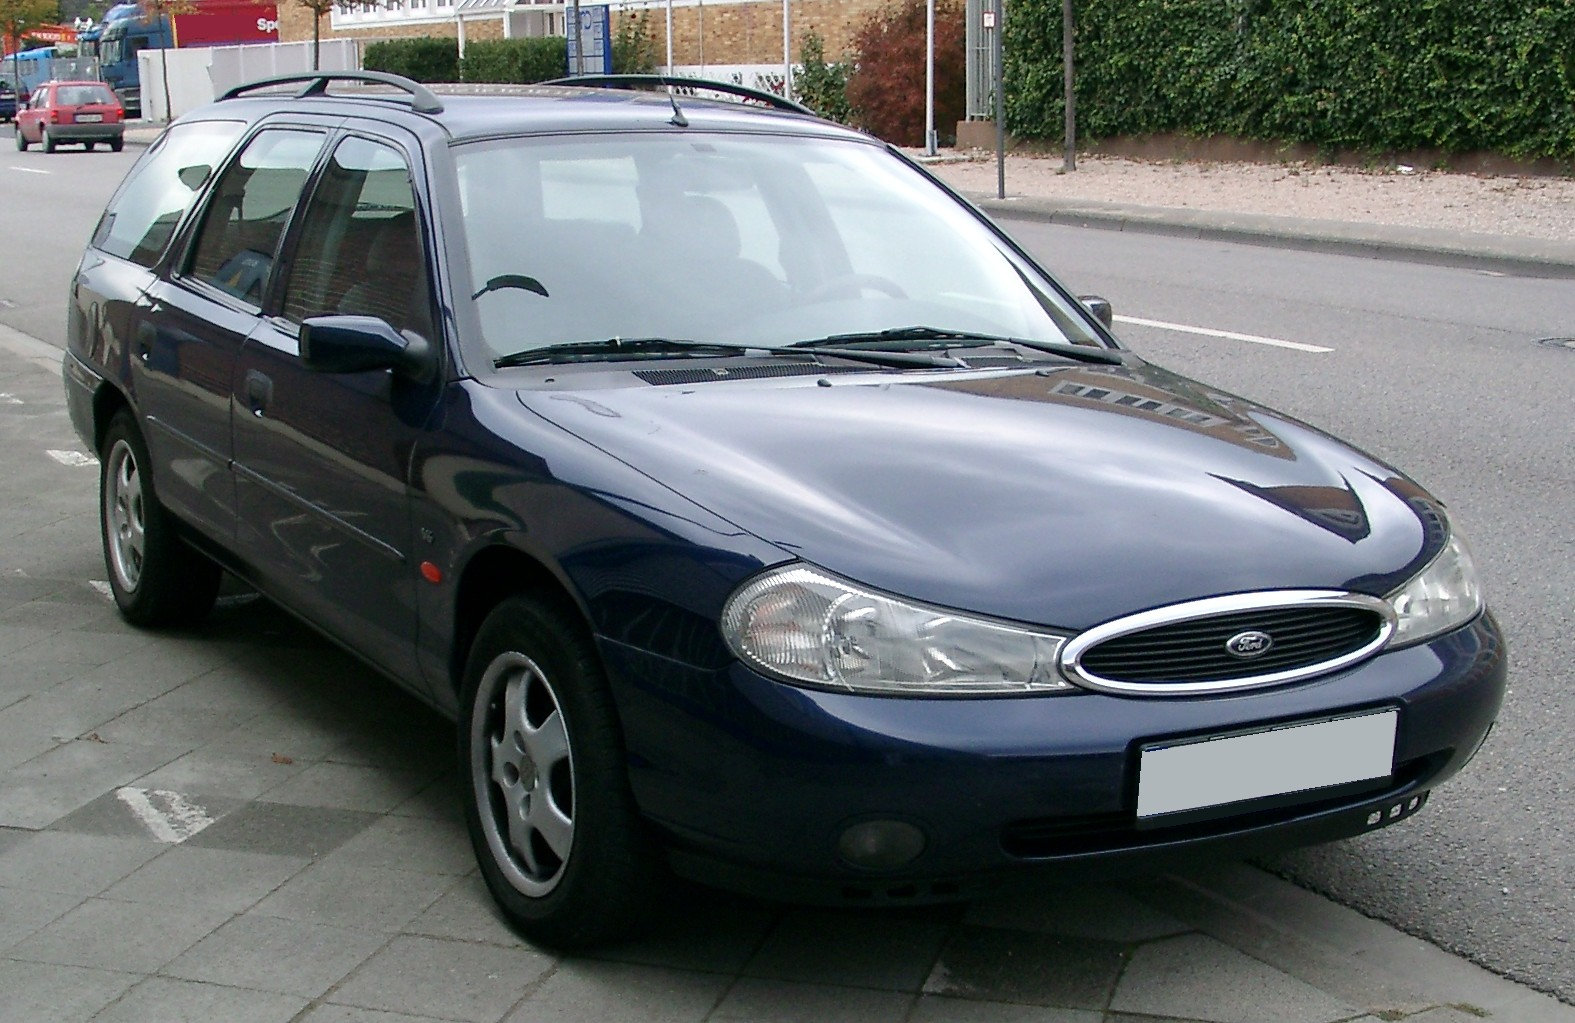 Ford Mondeo 1999 photo - 8